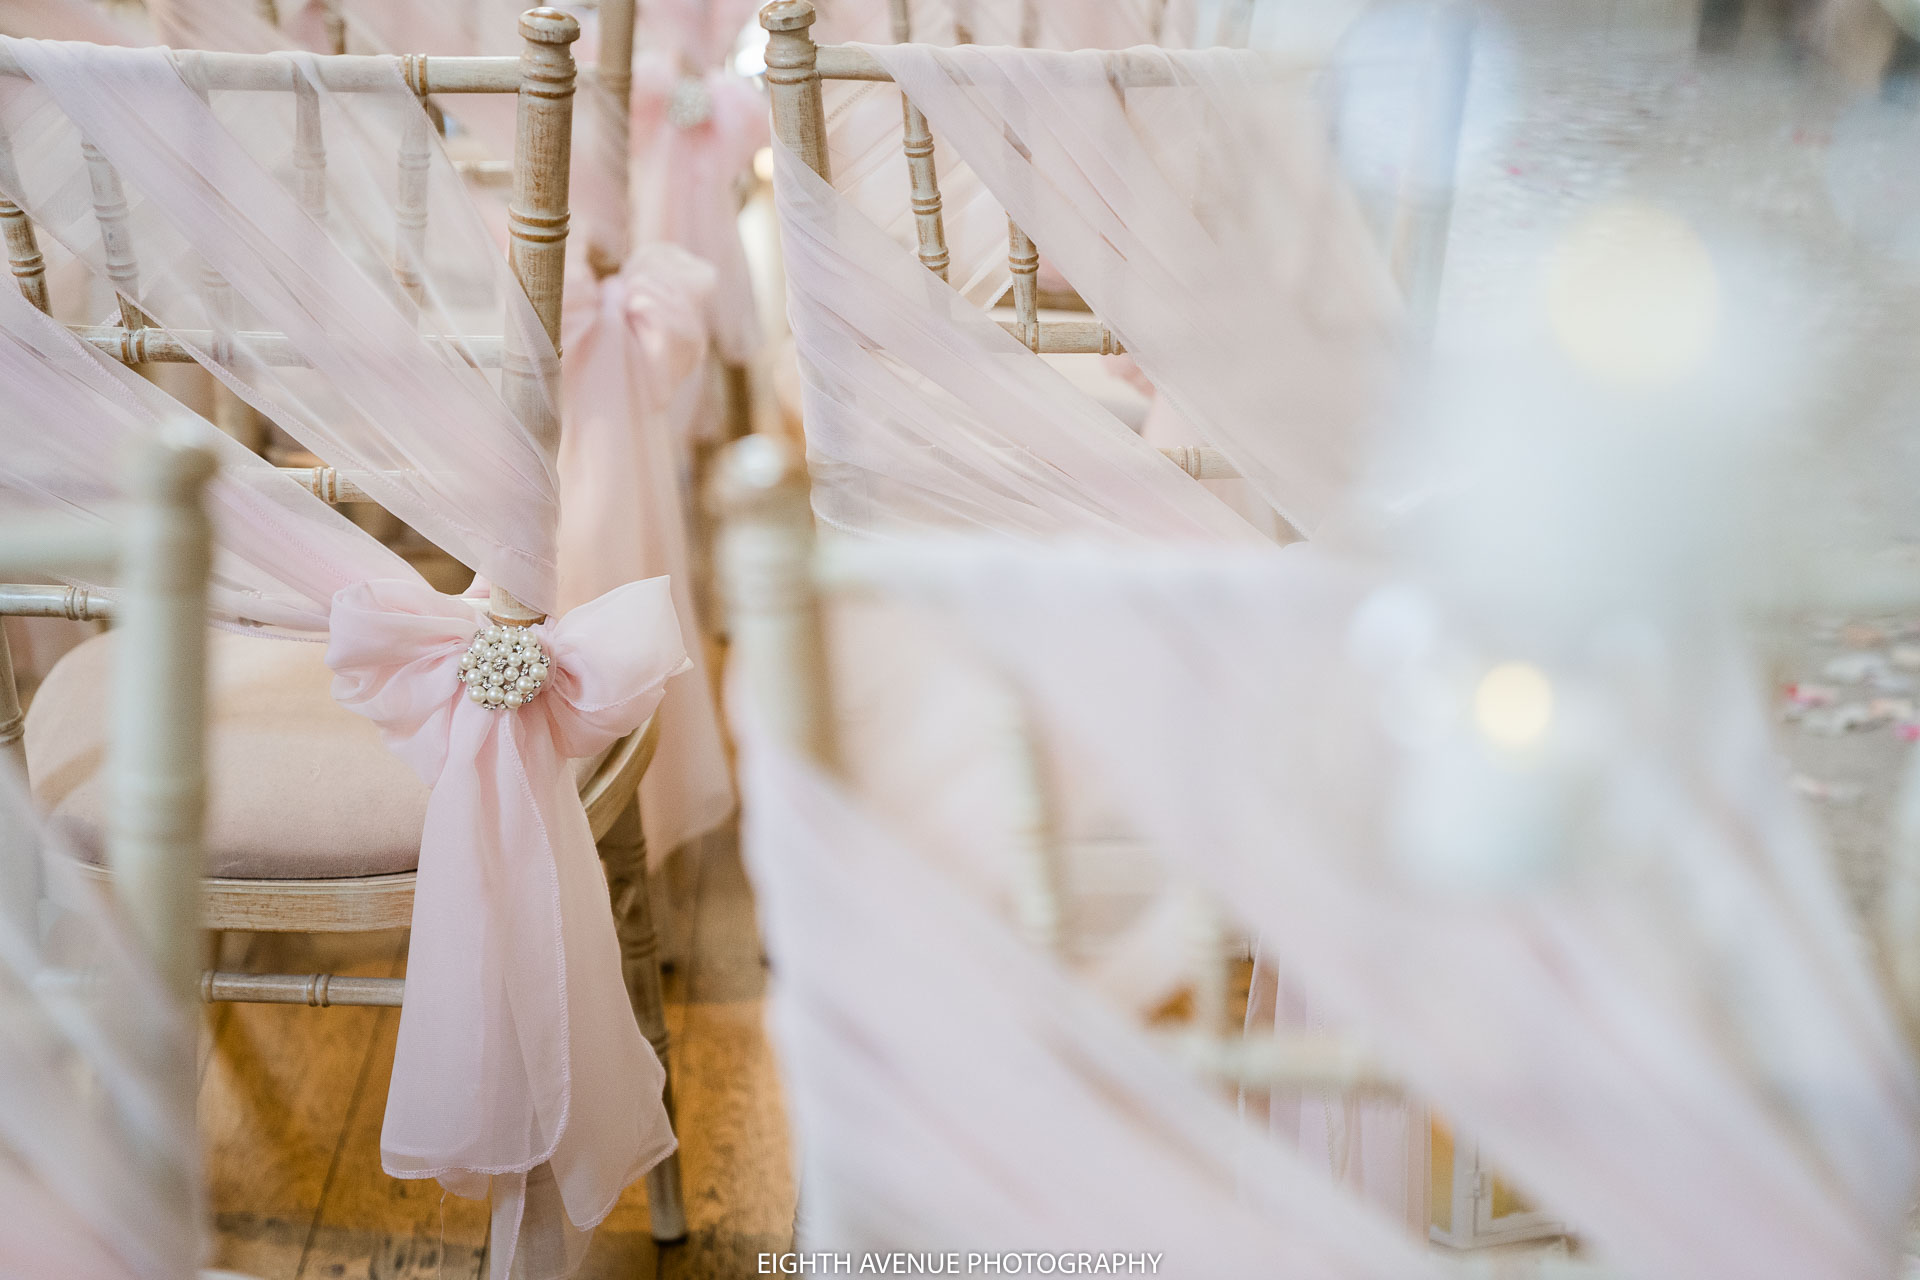 Pink sash on wedding chair ceremony